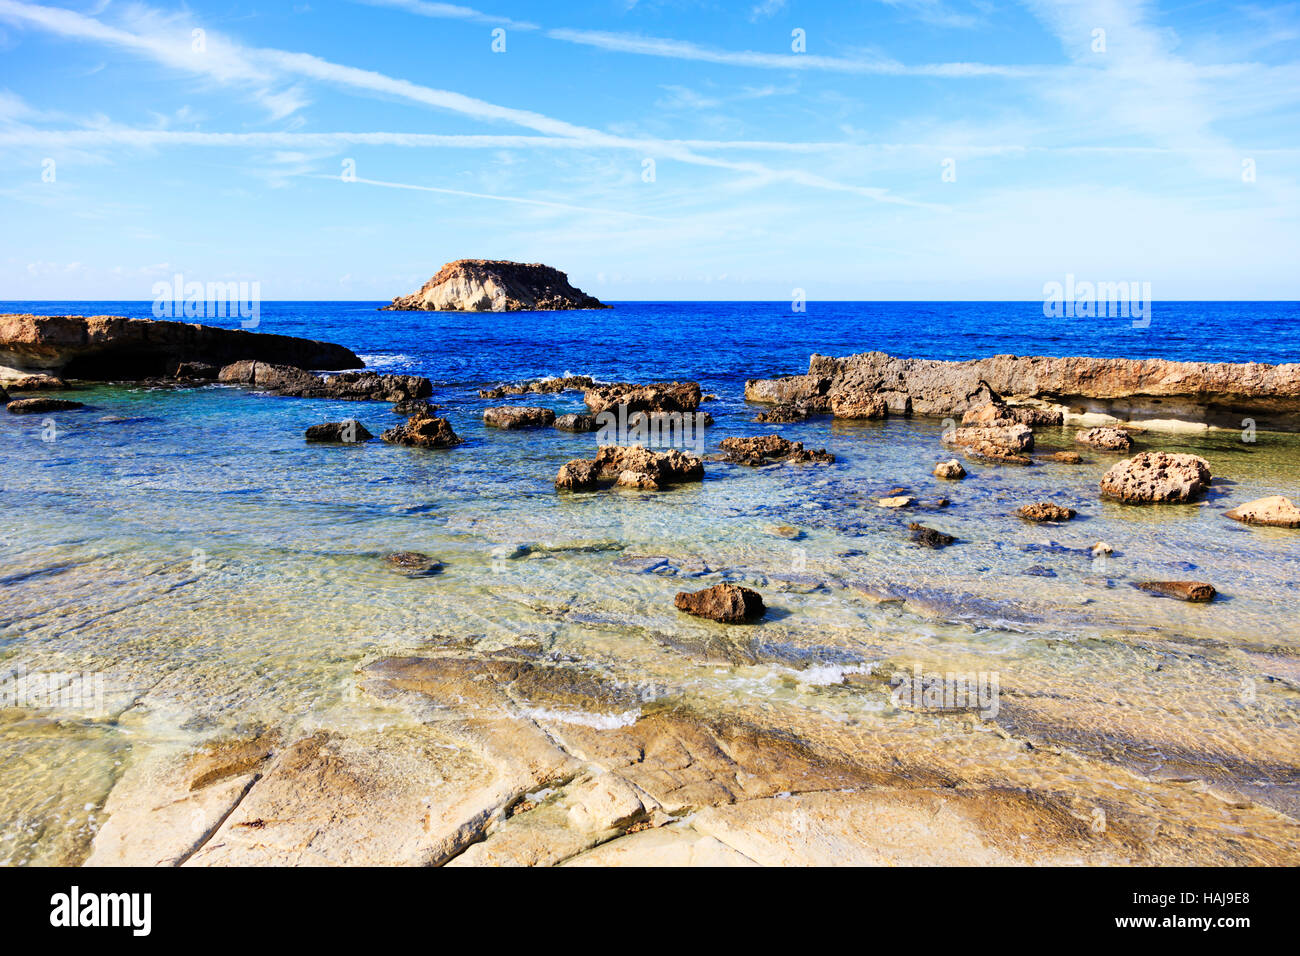 Beach at Agios Georgios with Geronisos island, Paphos.Cyprus Stock Photo